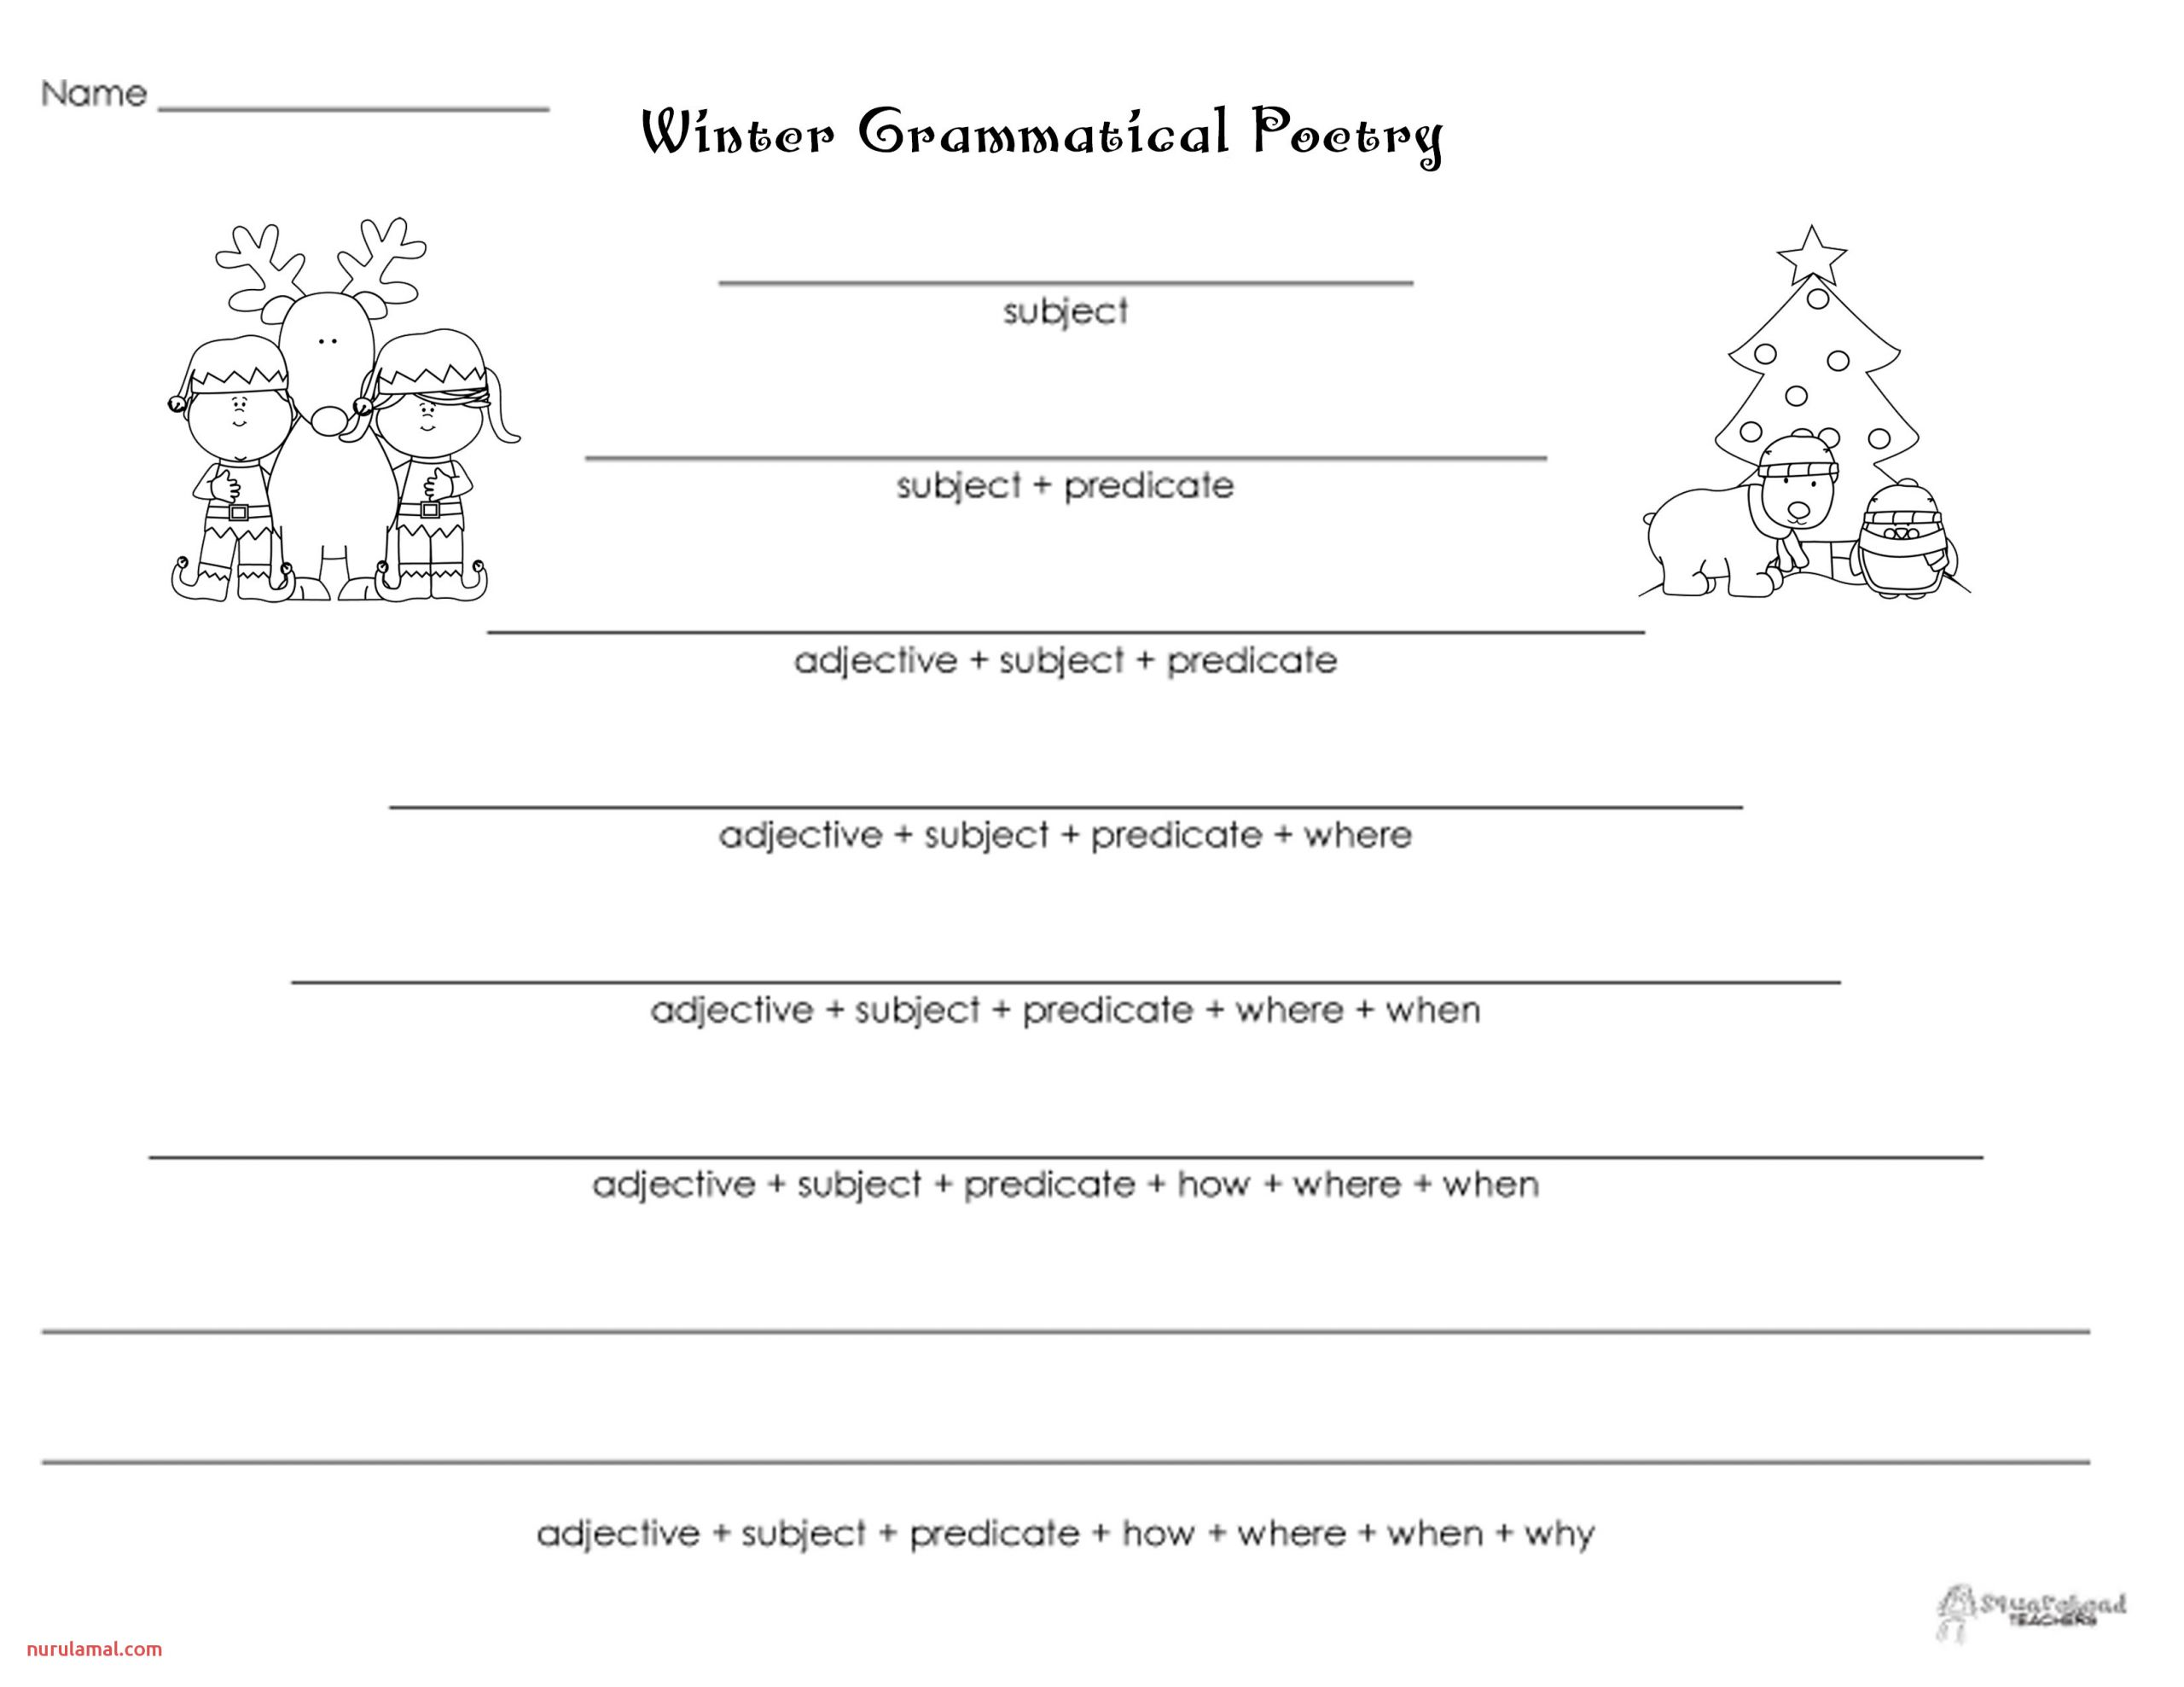 grammatical poetry winter